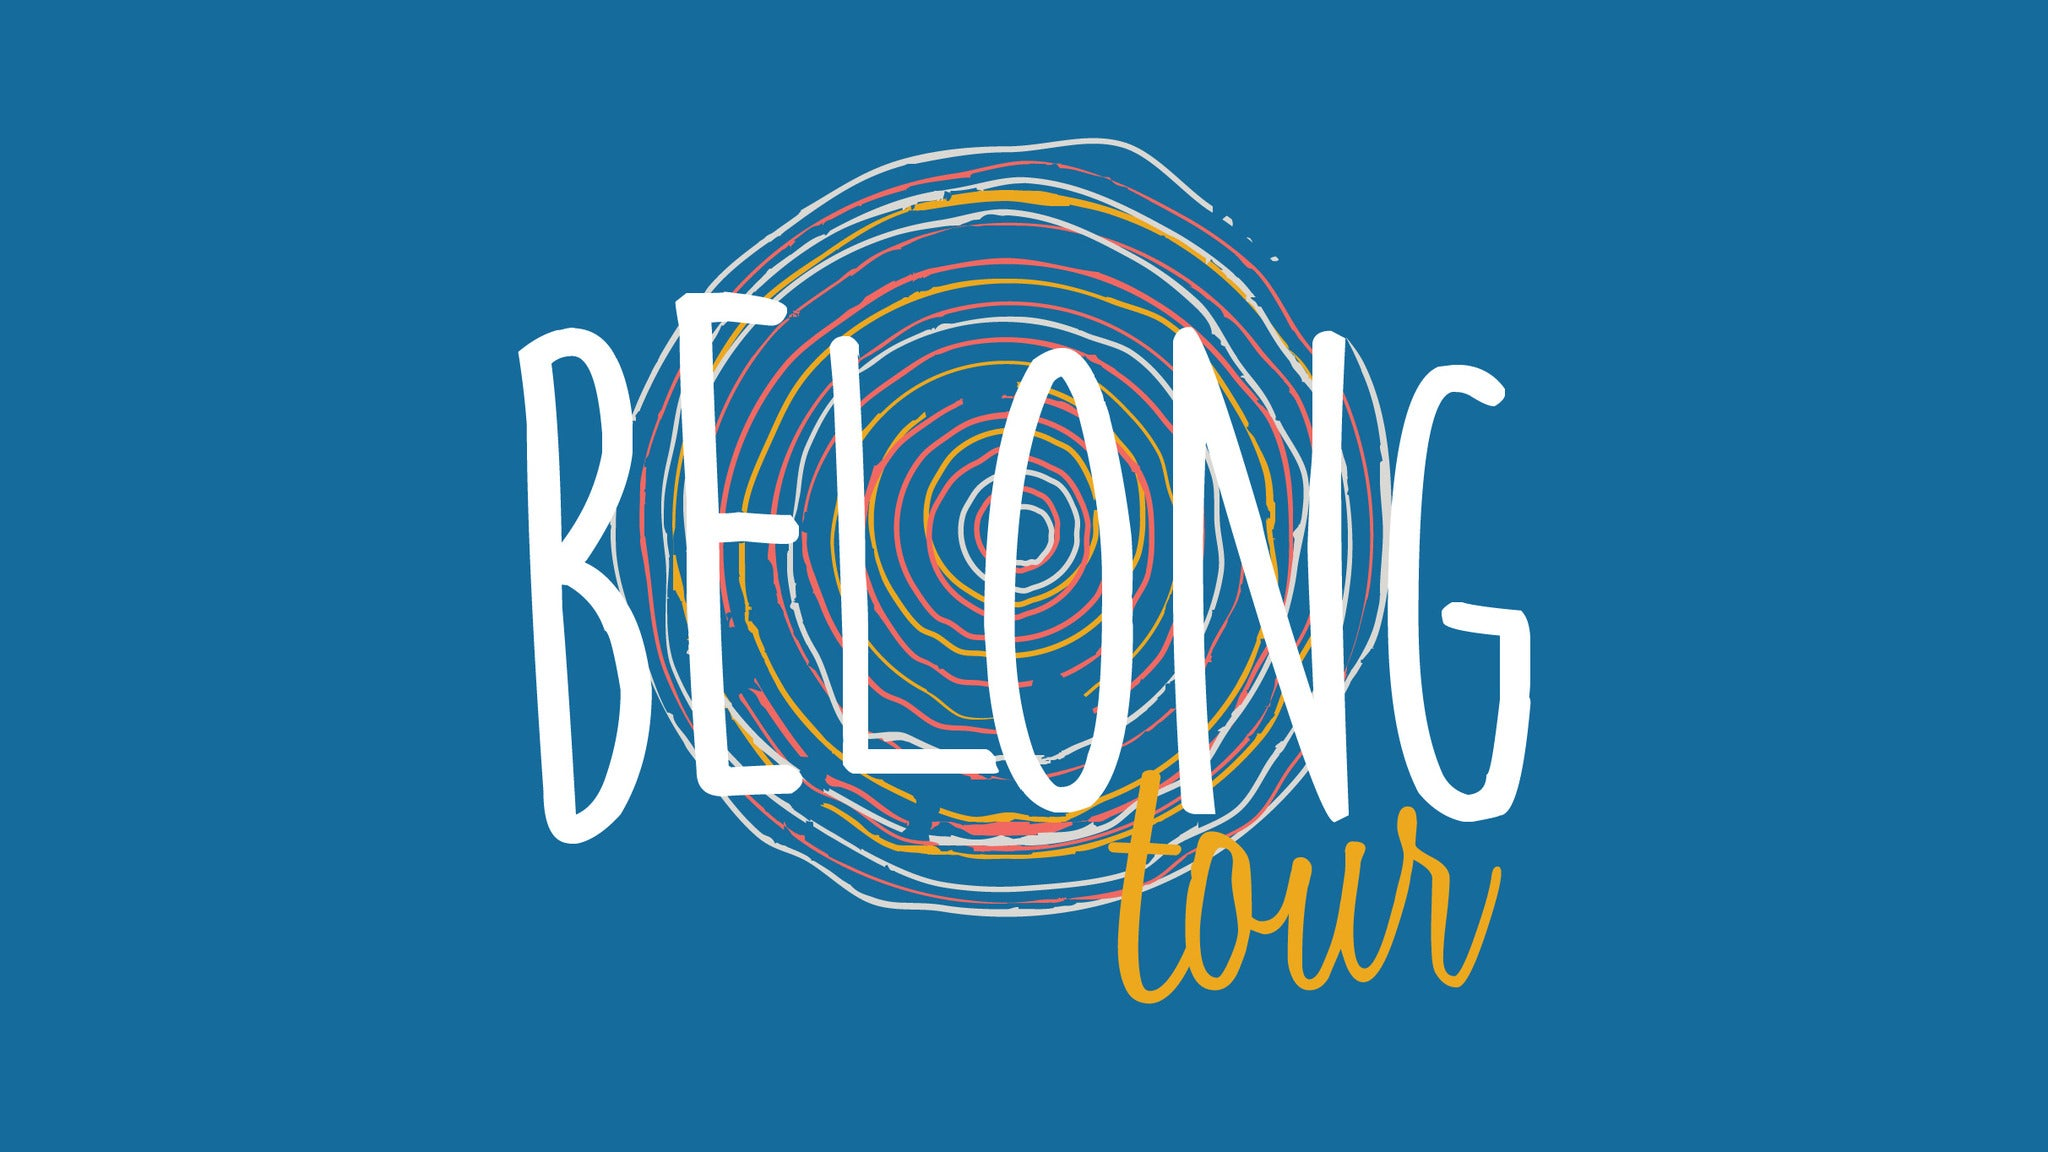 BELONG Tour